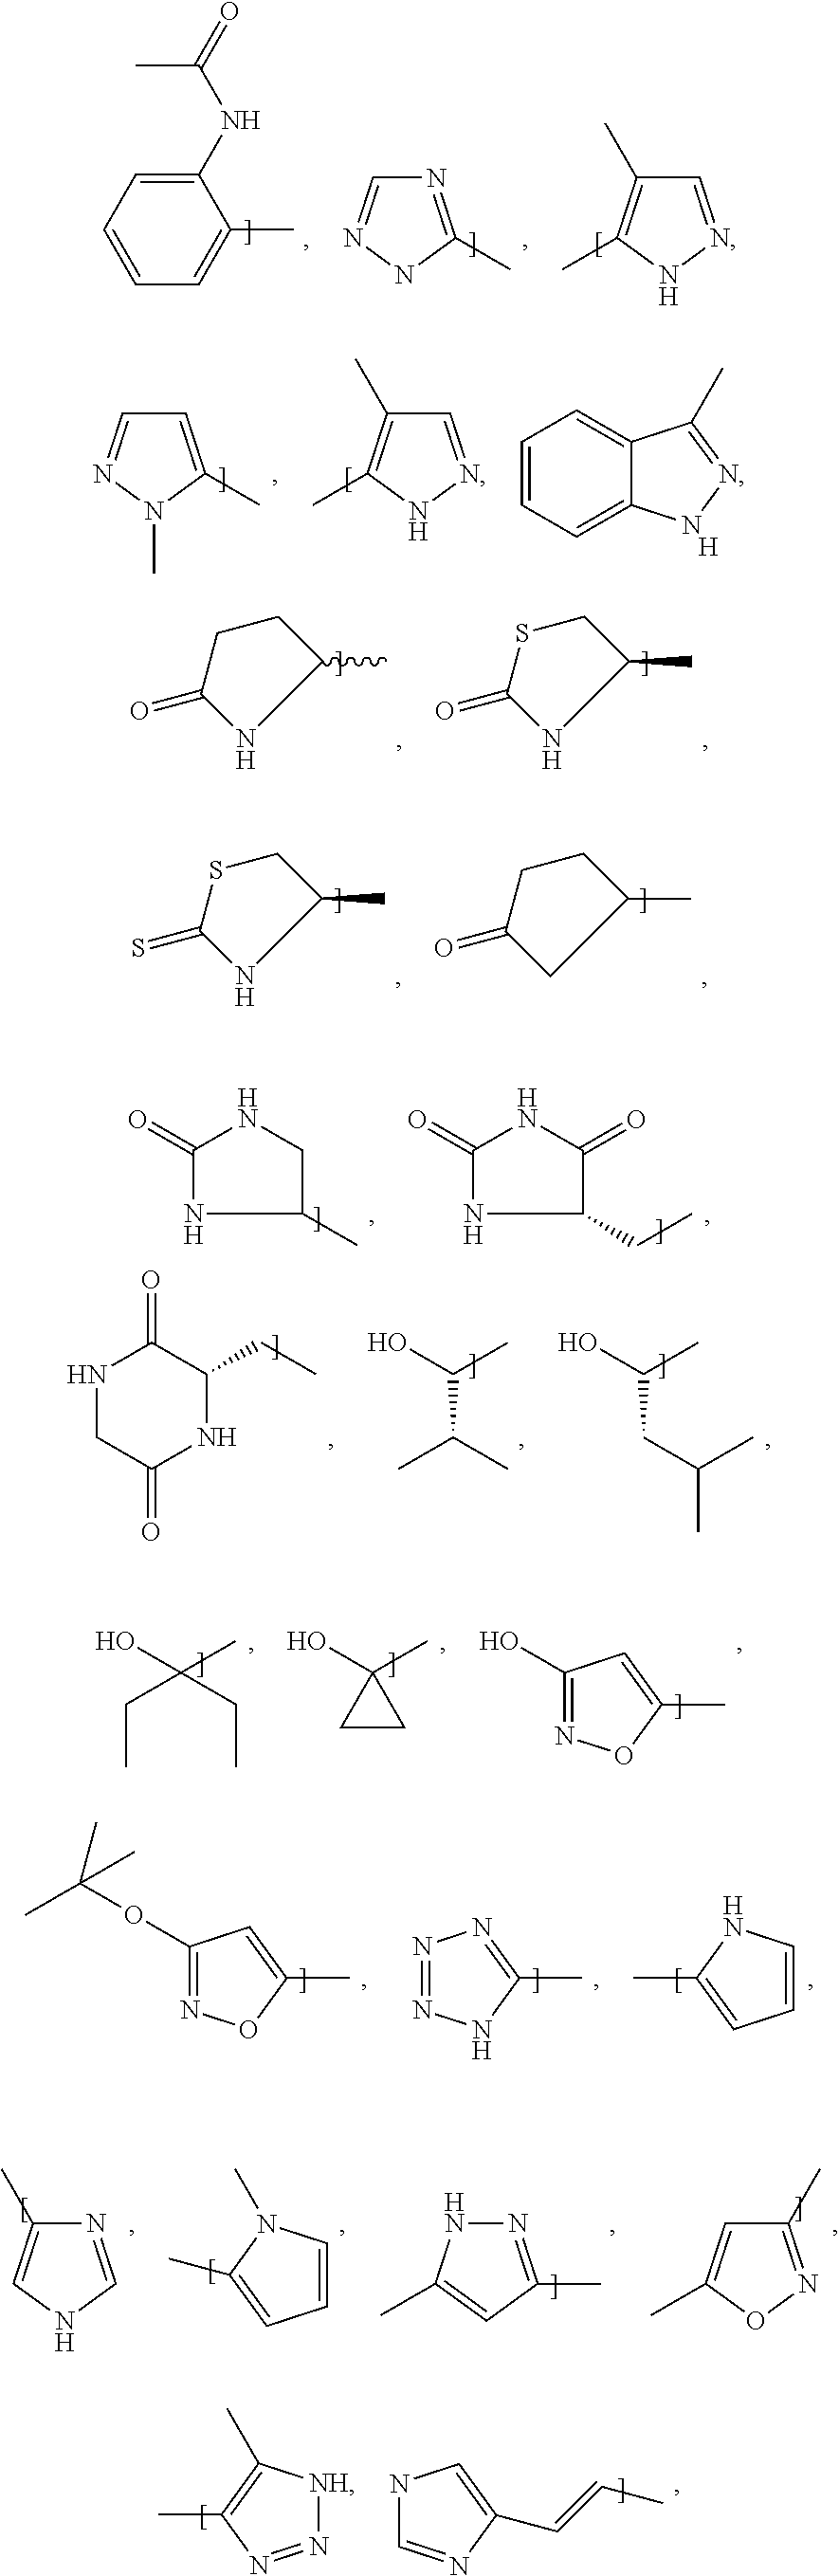 Us20140294763a1 Peptidomimetic Protease Inhibitors Google Patents Wiring Diagram Lowe 165 Fm Figure 20141002 C00031